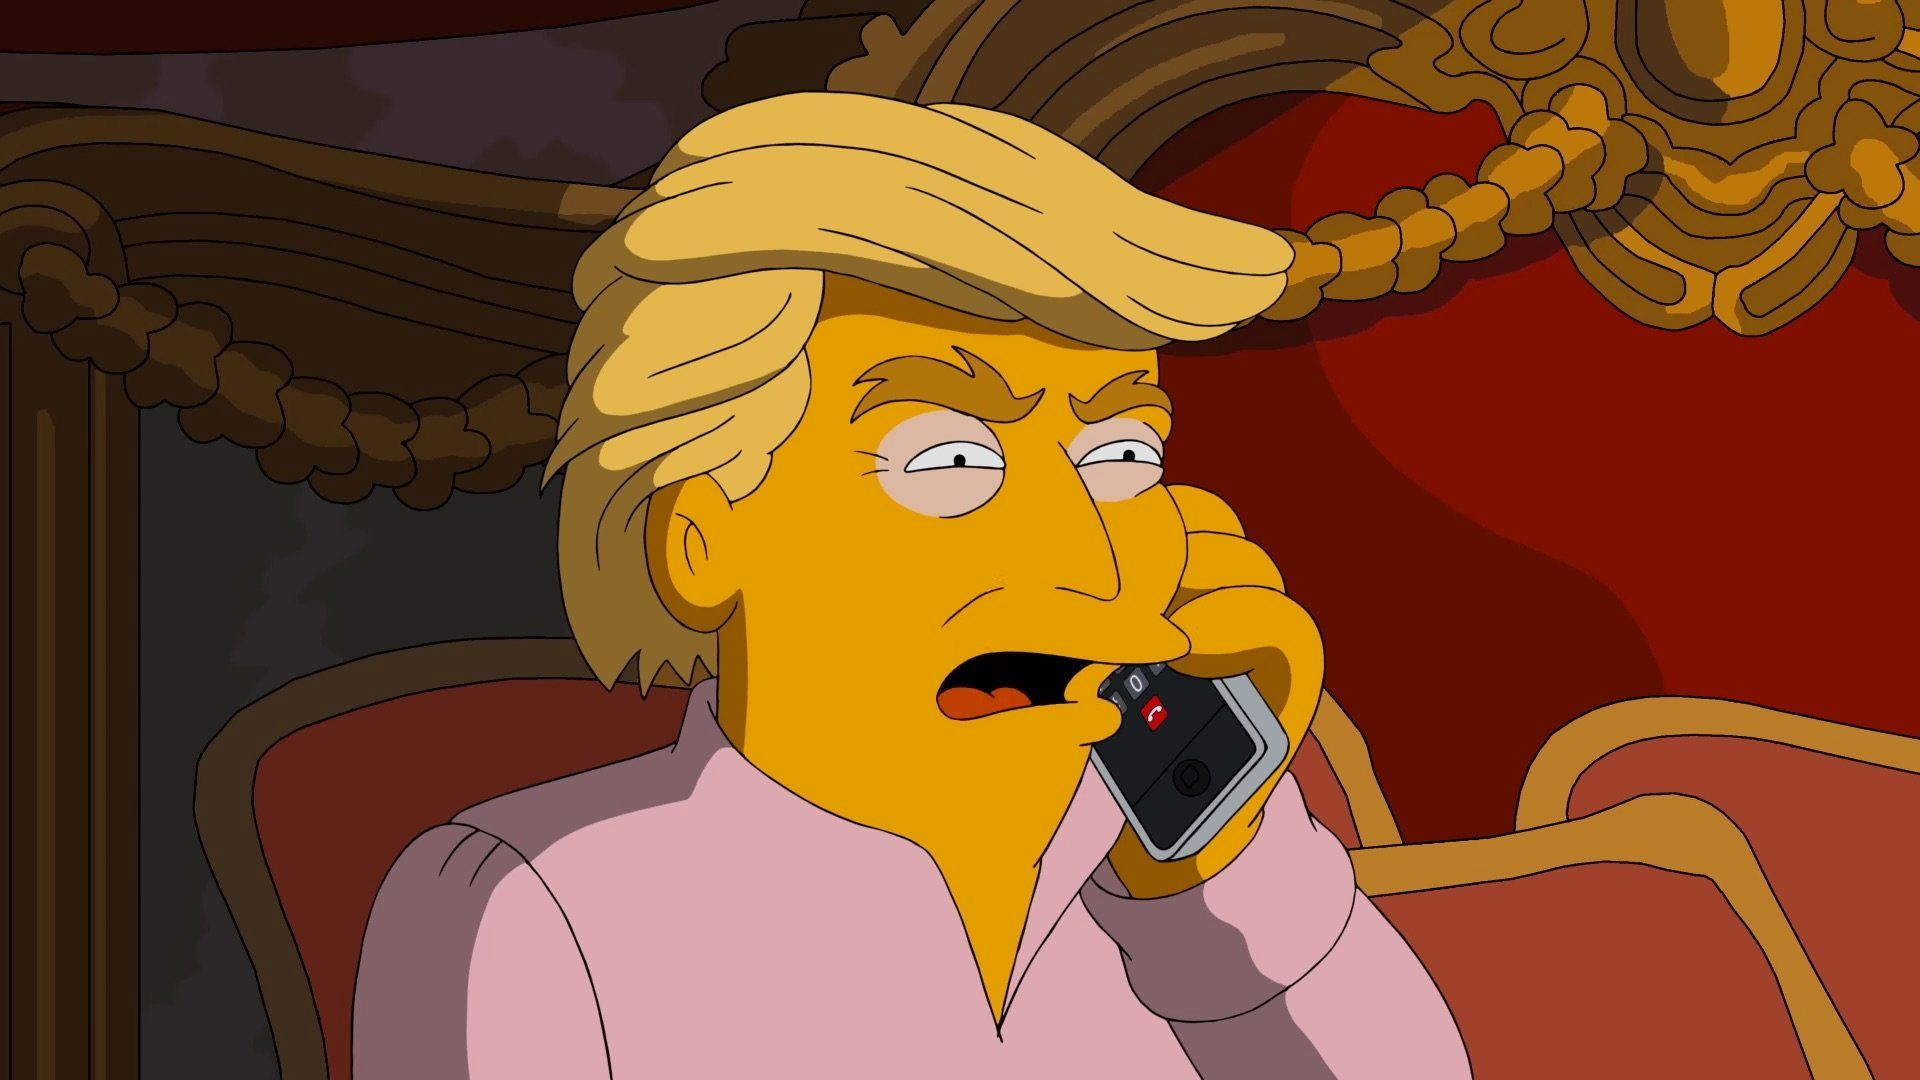 'The Simpsons' Shows Donald Trump Like You've Never Seen Him